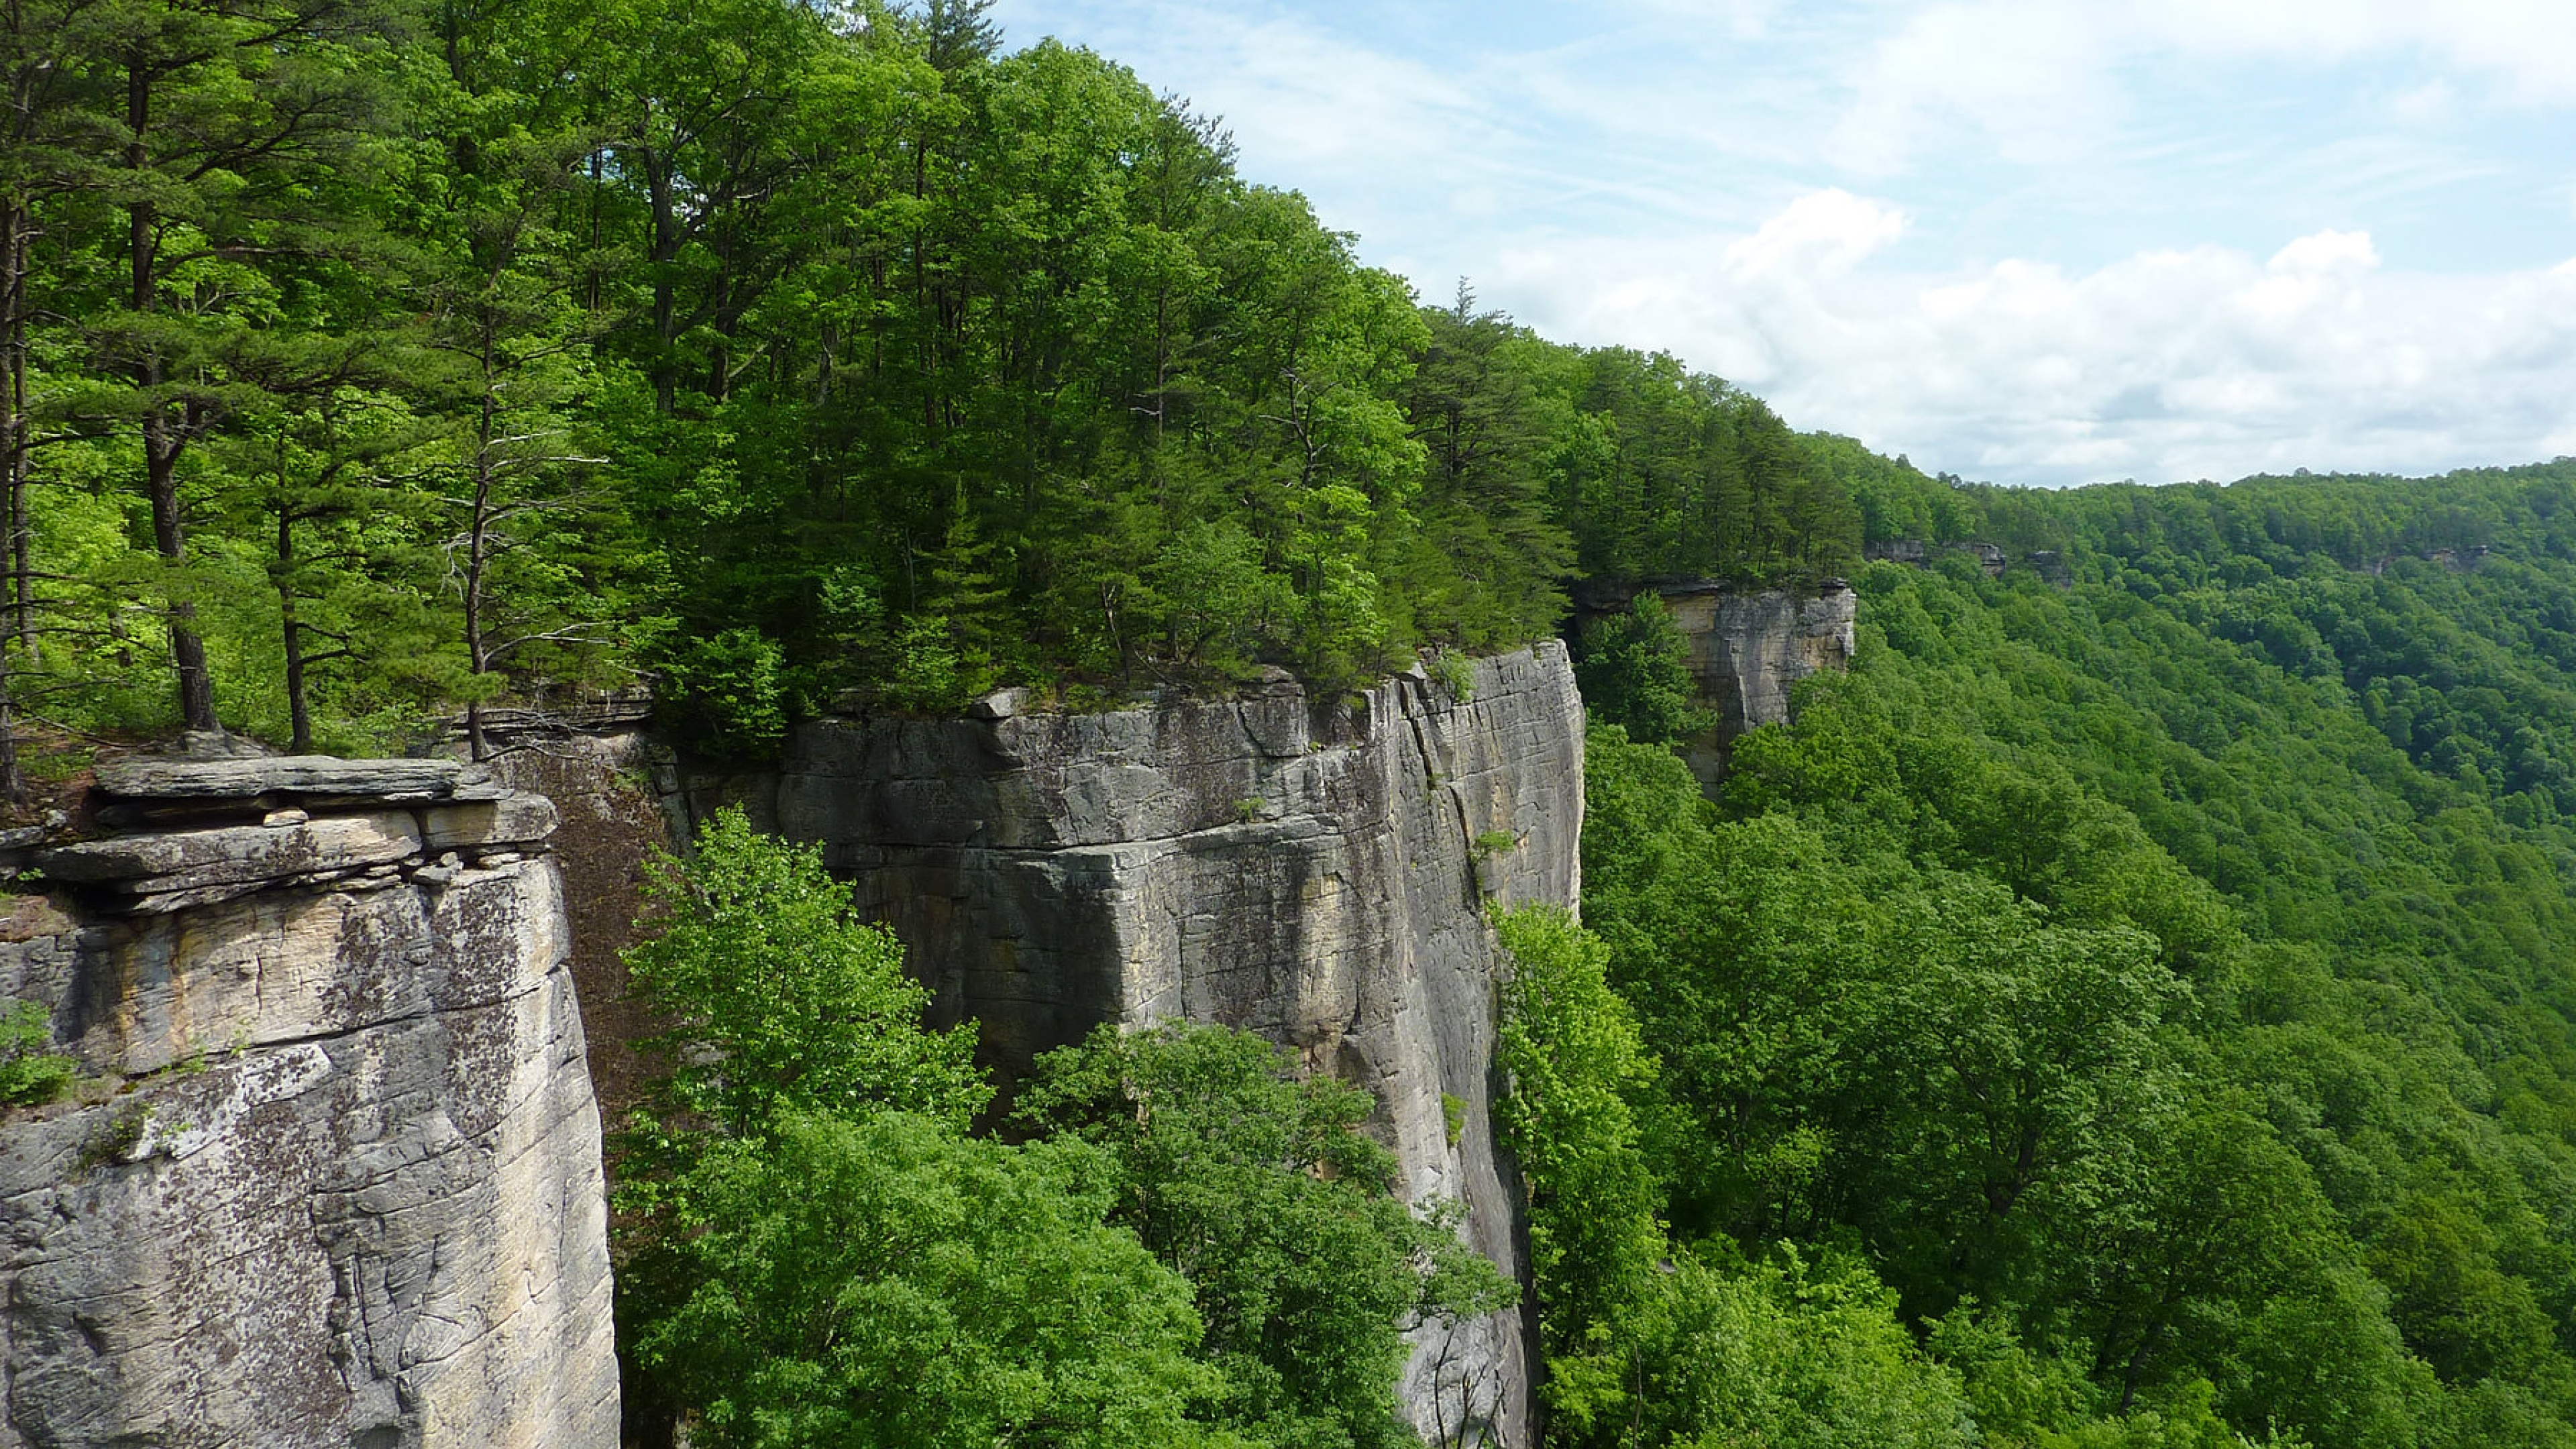 The grey stone cliffs amongst a forest of green trees at the New River Gorge National Recreation Area